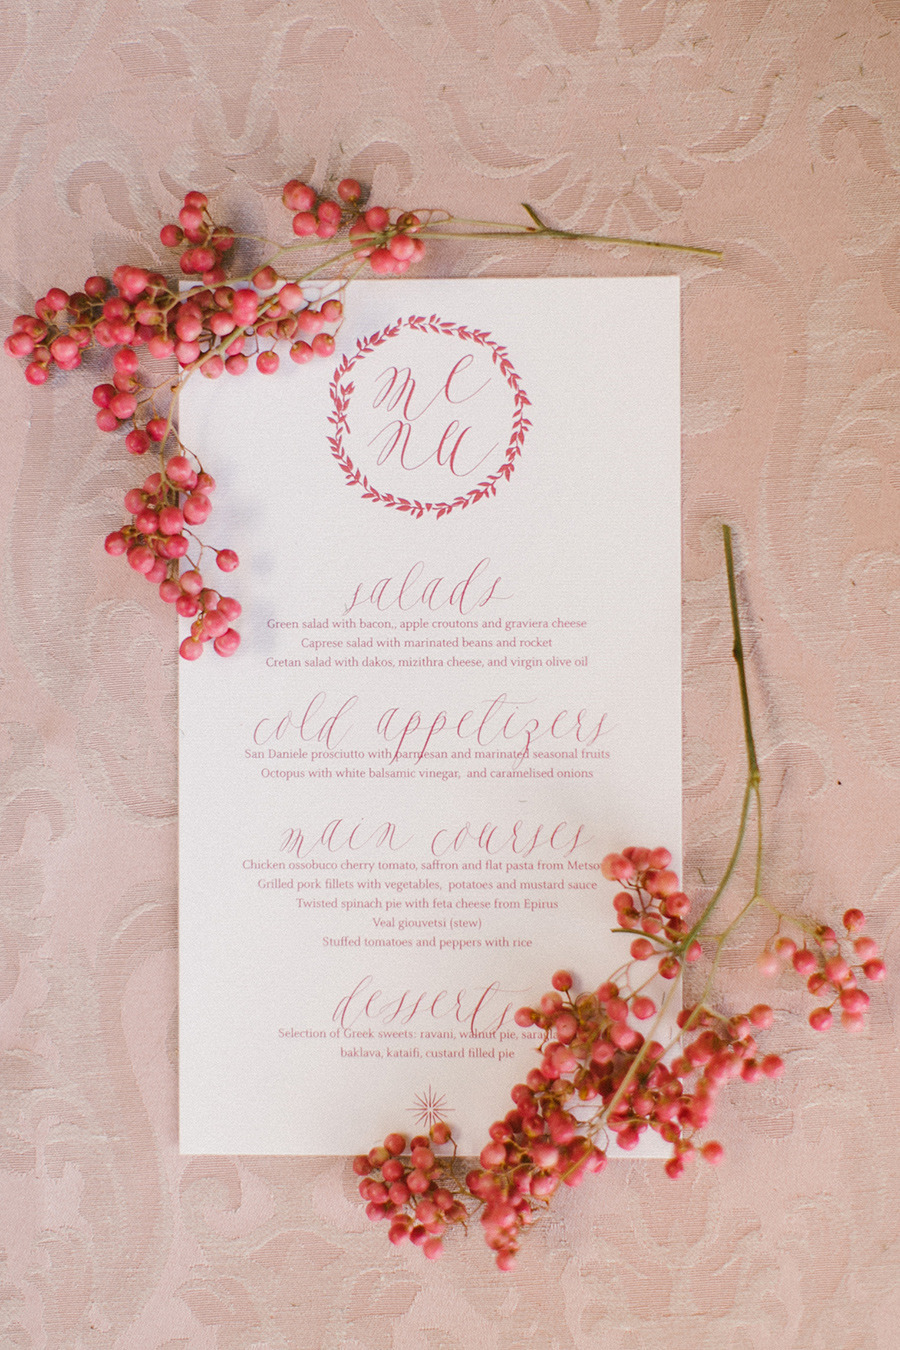 wedding menu - Boho Chic Wedding Inspiration Shoot from Anna Roussos Photography - annaroussos.com | Read more : https://www.fabmood.com/boho-chic-wedding-inspiration-shoot-anna-roussos-photography